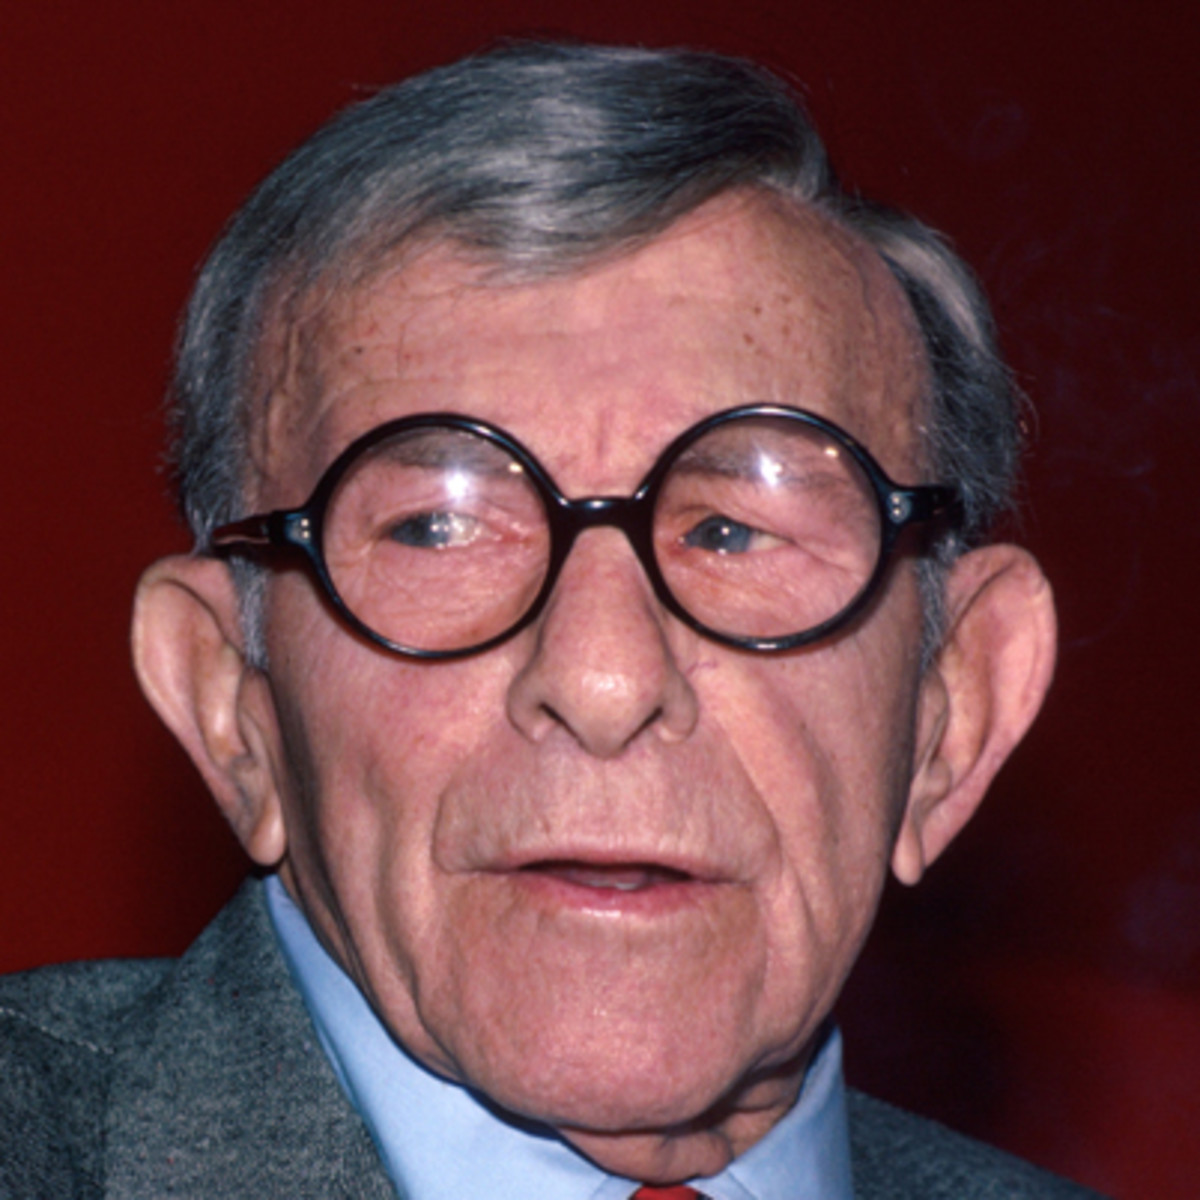 george burns television personality comedian film actor